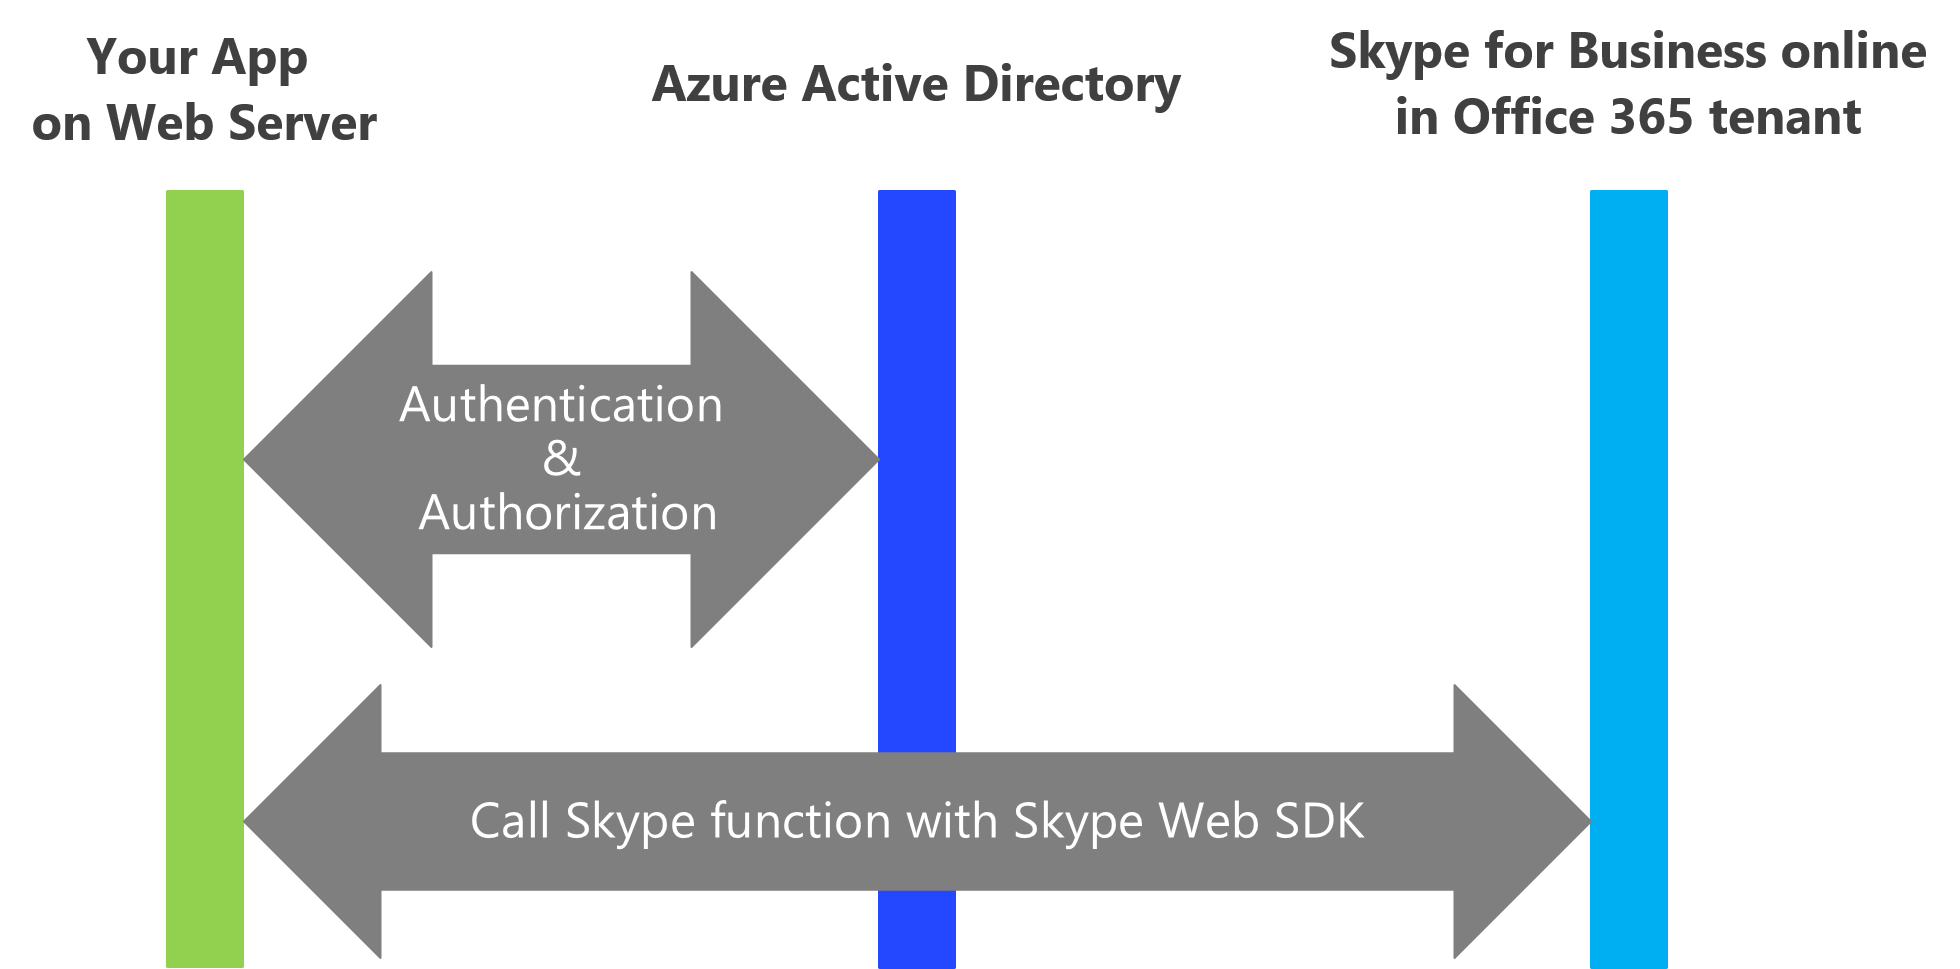 How to Integrate Skype for Business into your Application